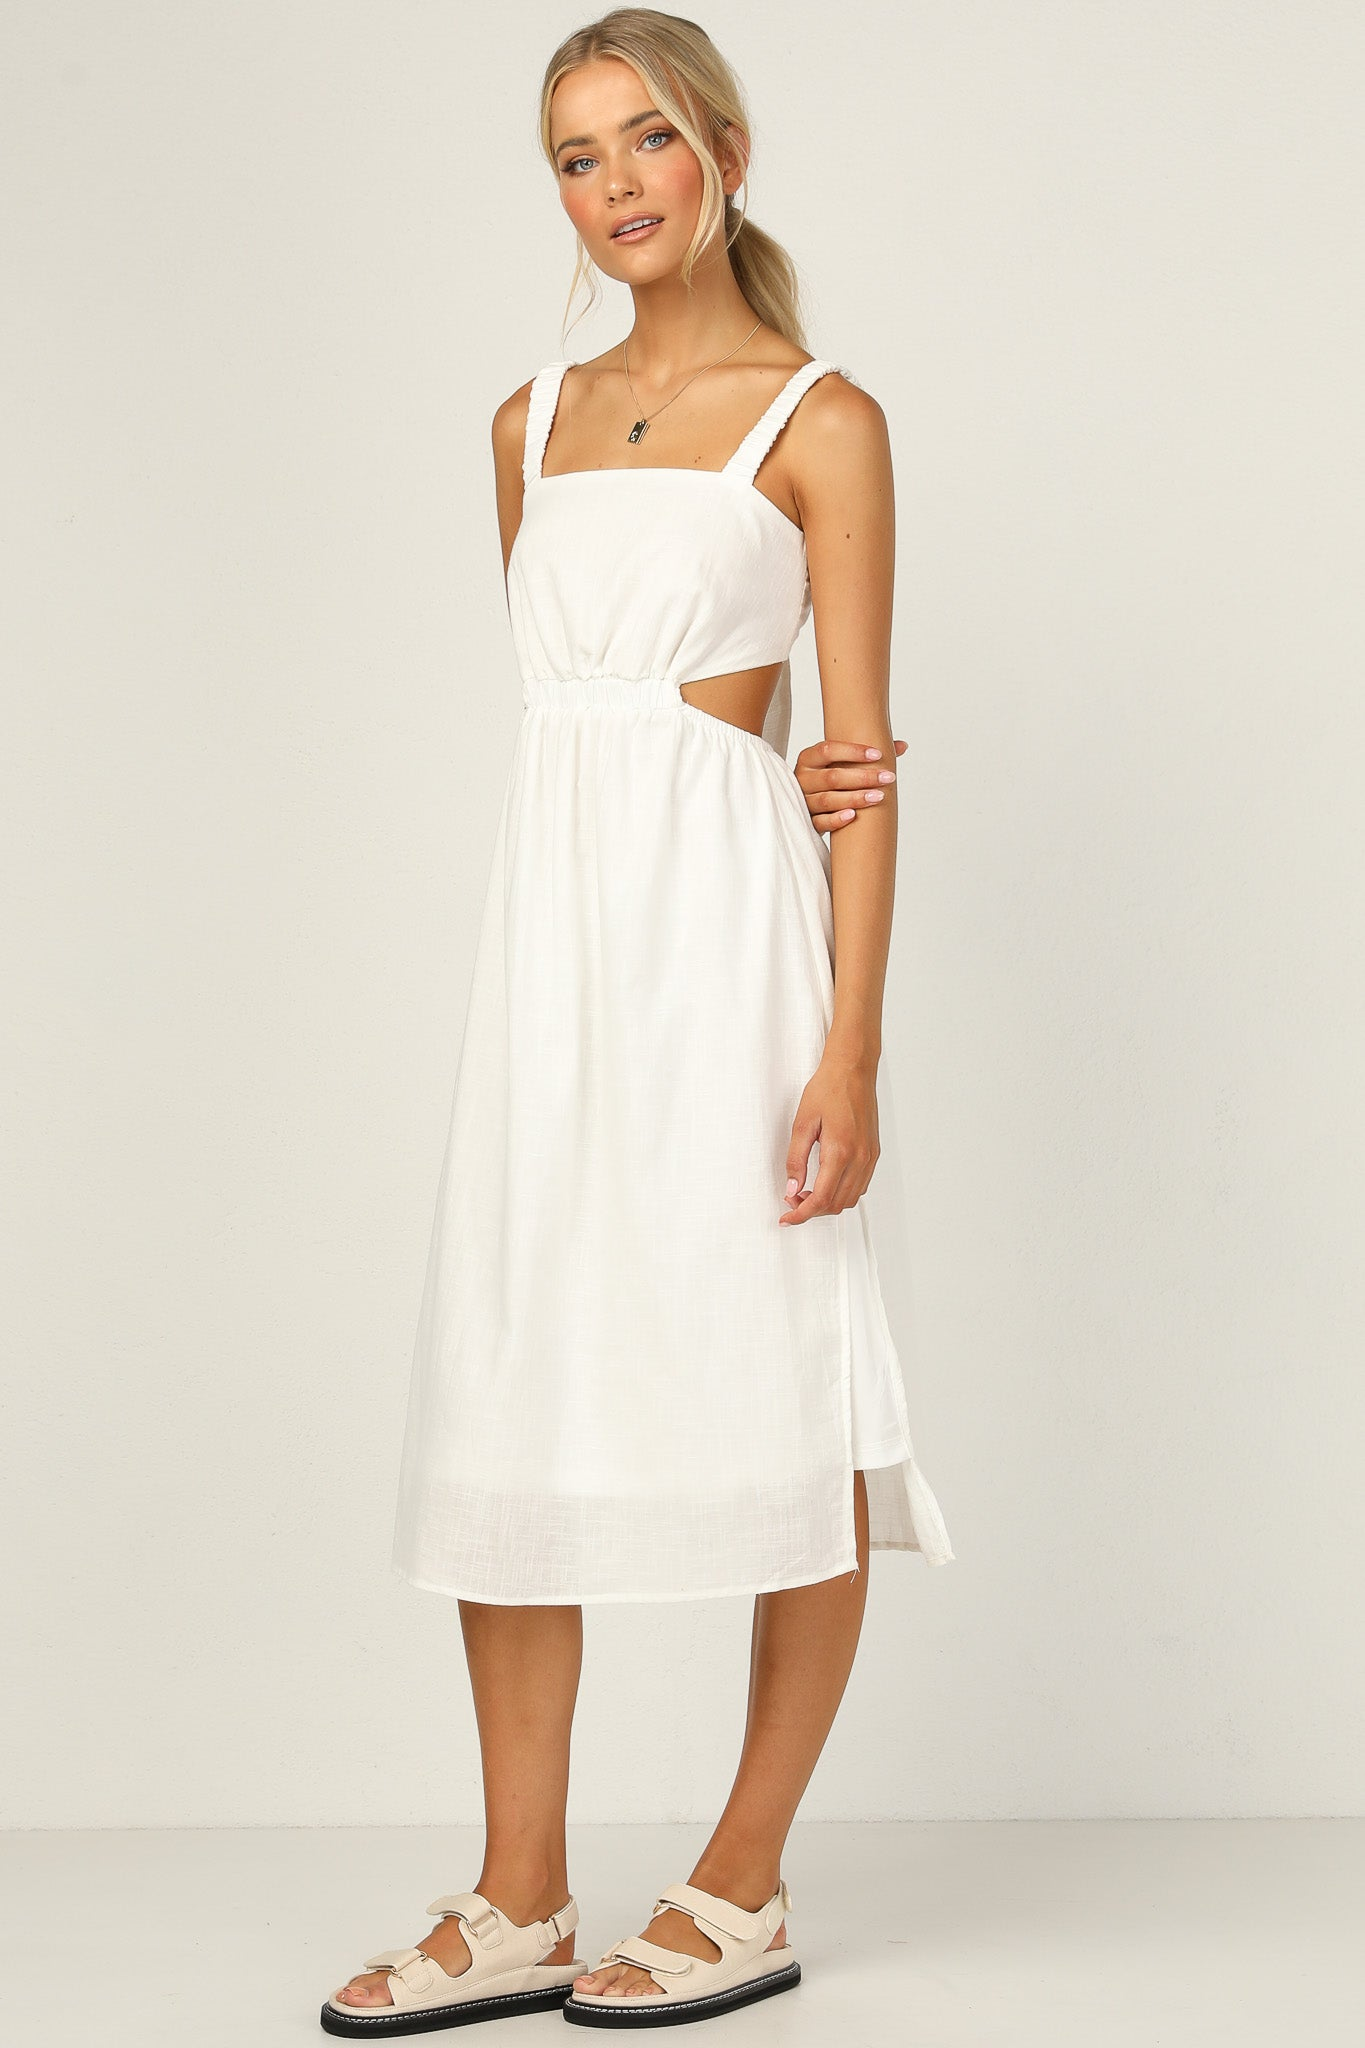 Riviera Dress (White)